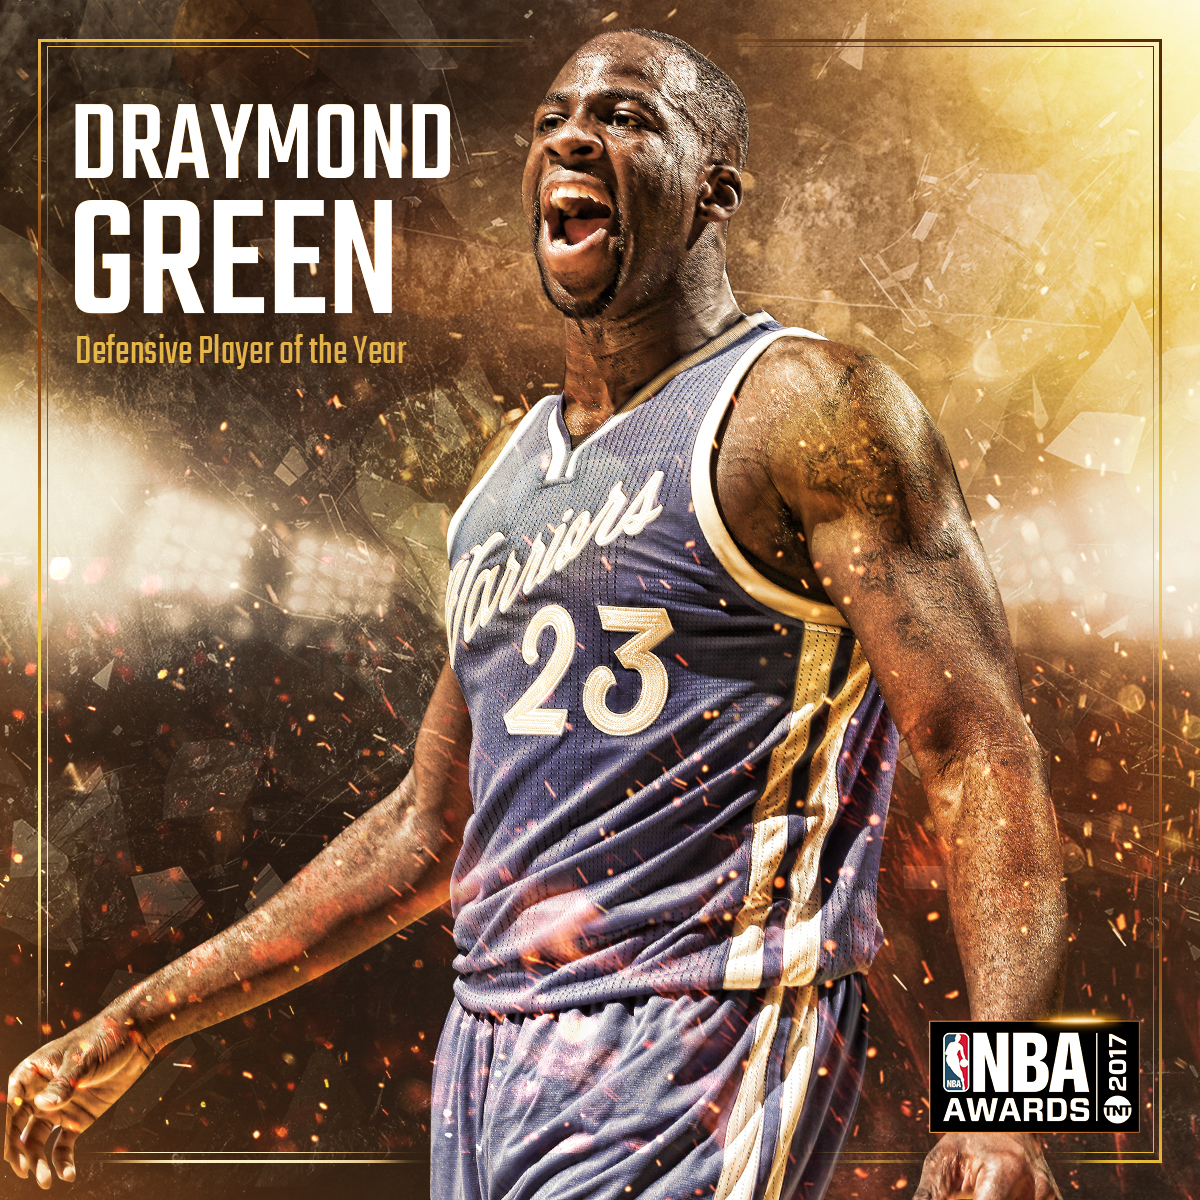 2017 NBA AWARDS - NBA Defensive Player of the Year Draymond Green